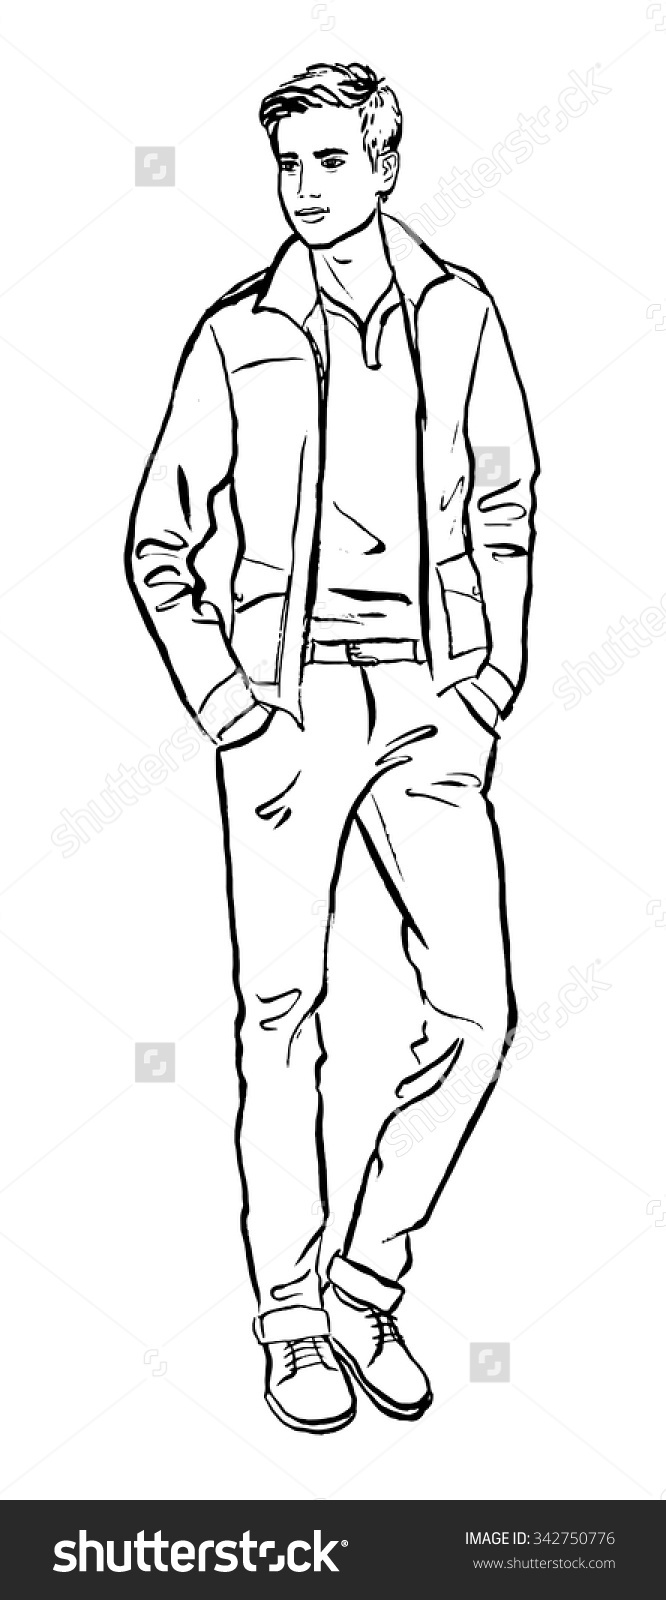 Fashion Illustration Man Hand Drawn Ink Stock Vector 342750776.